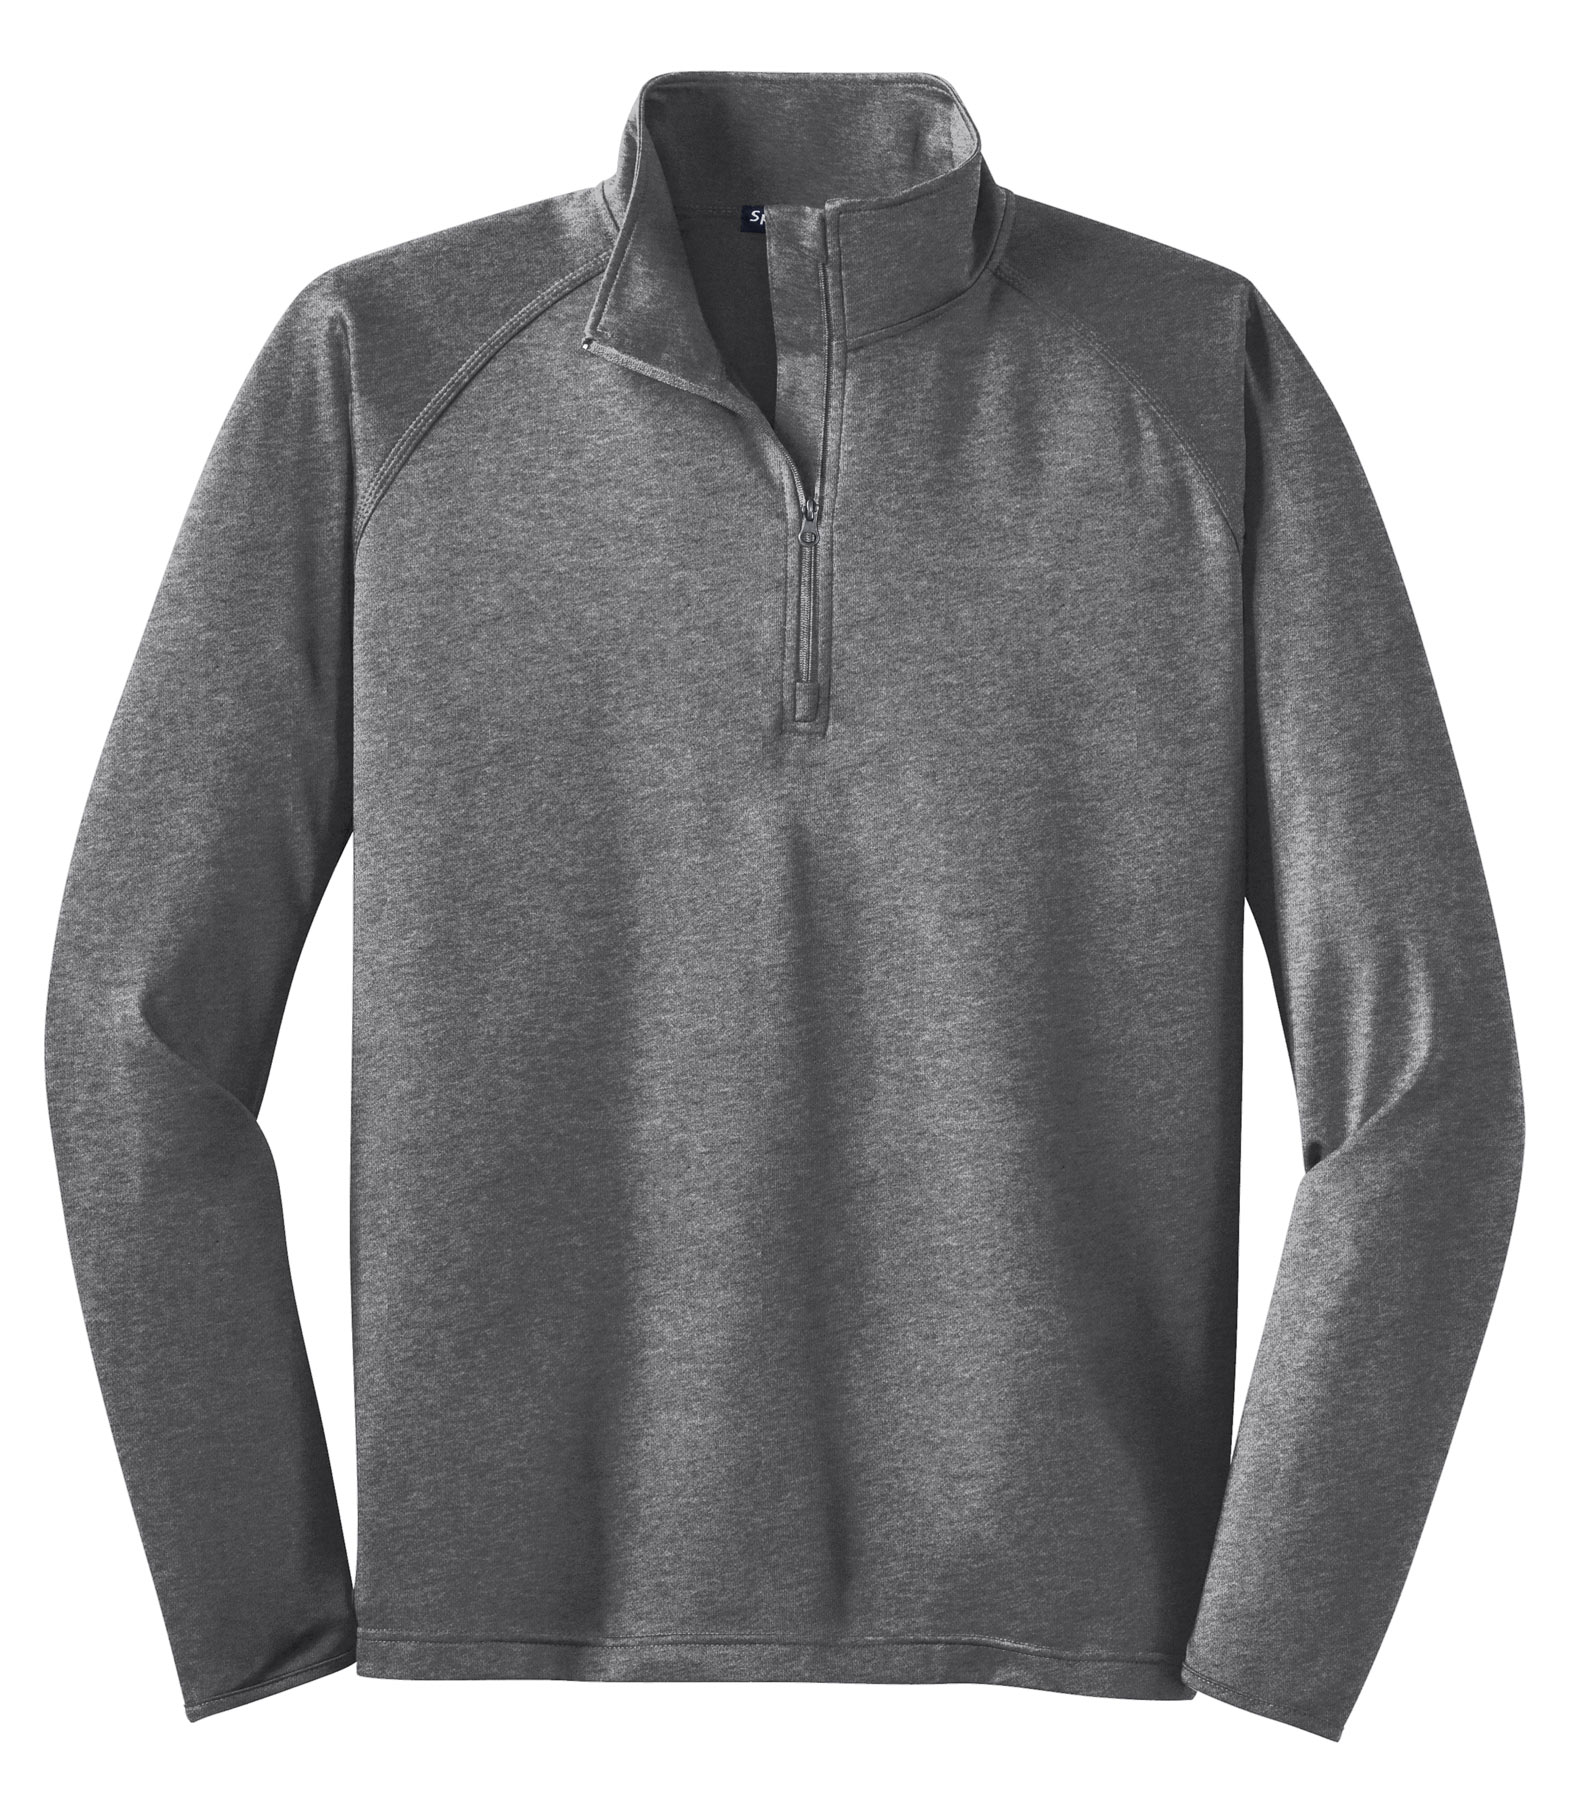 Custom Made 1 4 Zip Sweatshirts and Custom Made 1 4 Zip Sweats 6ac5b461c